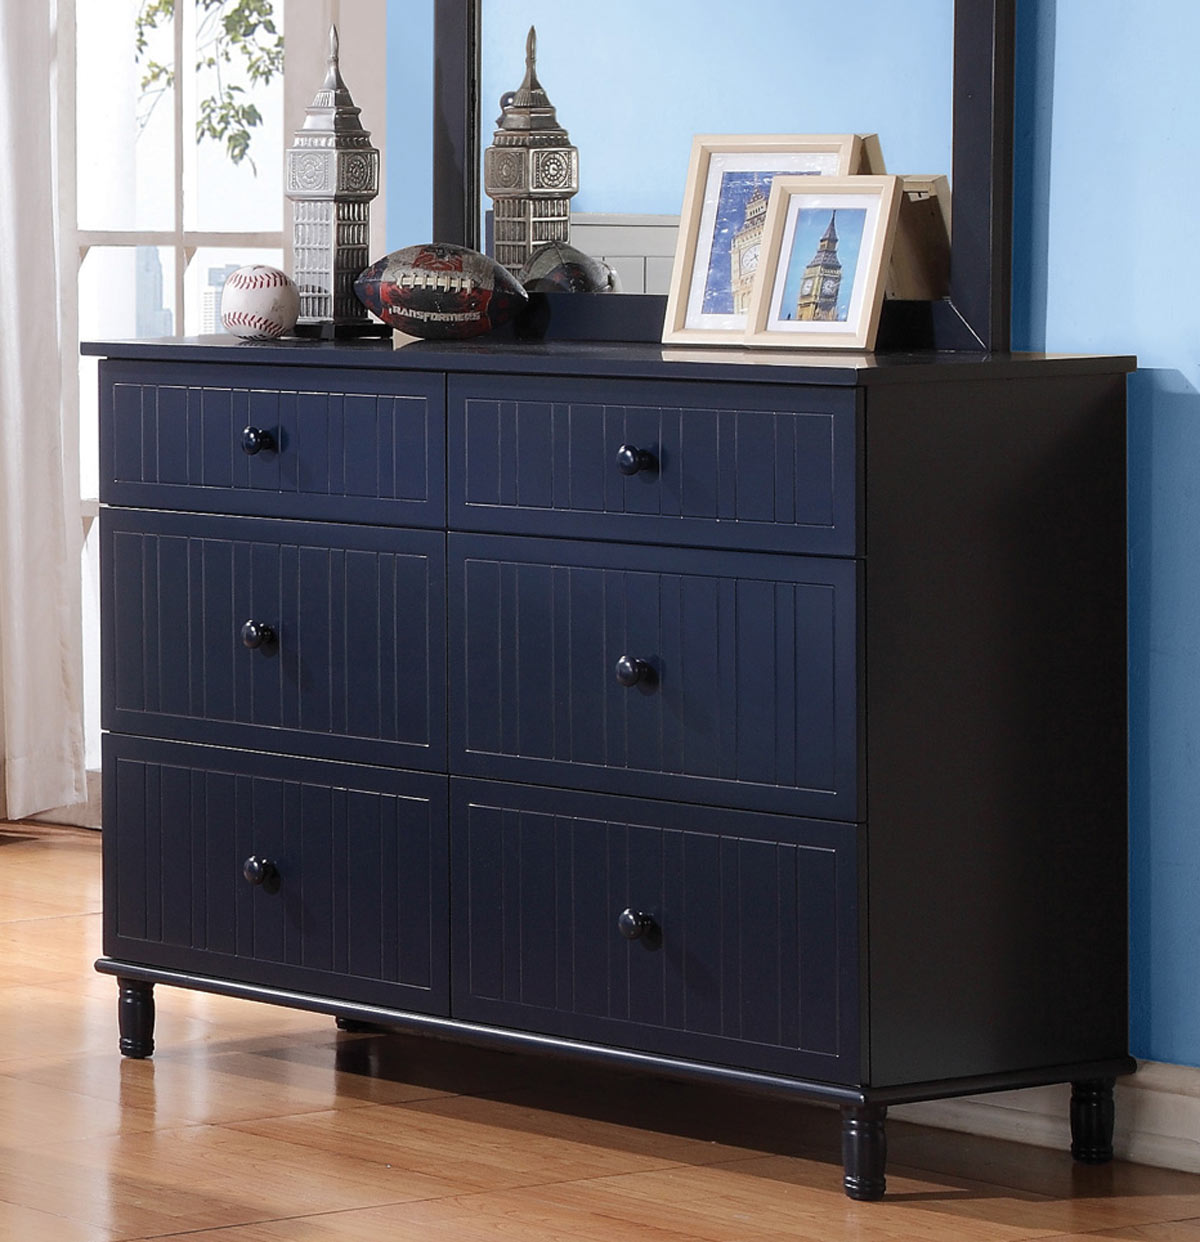 Coaster Zachary Dresser - Navy Blue